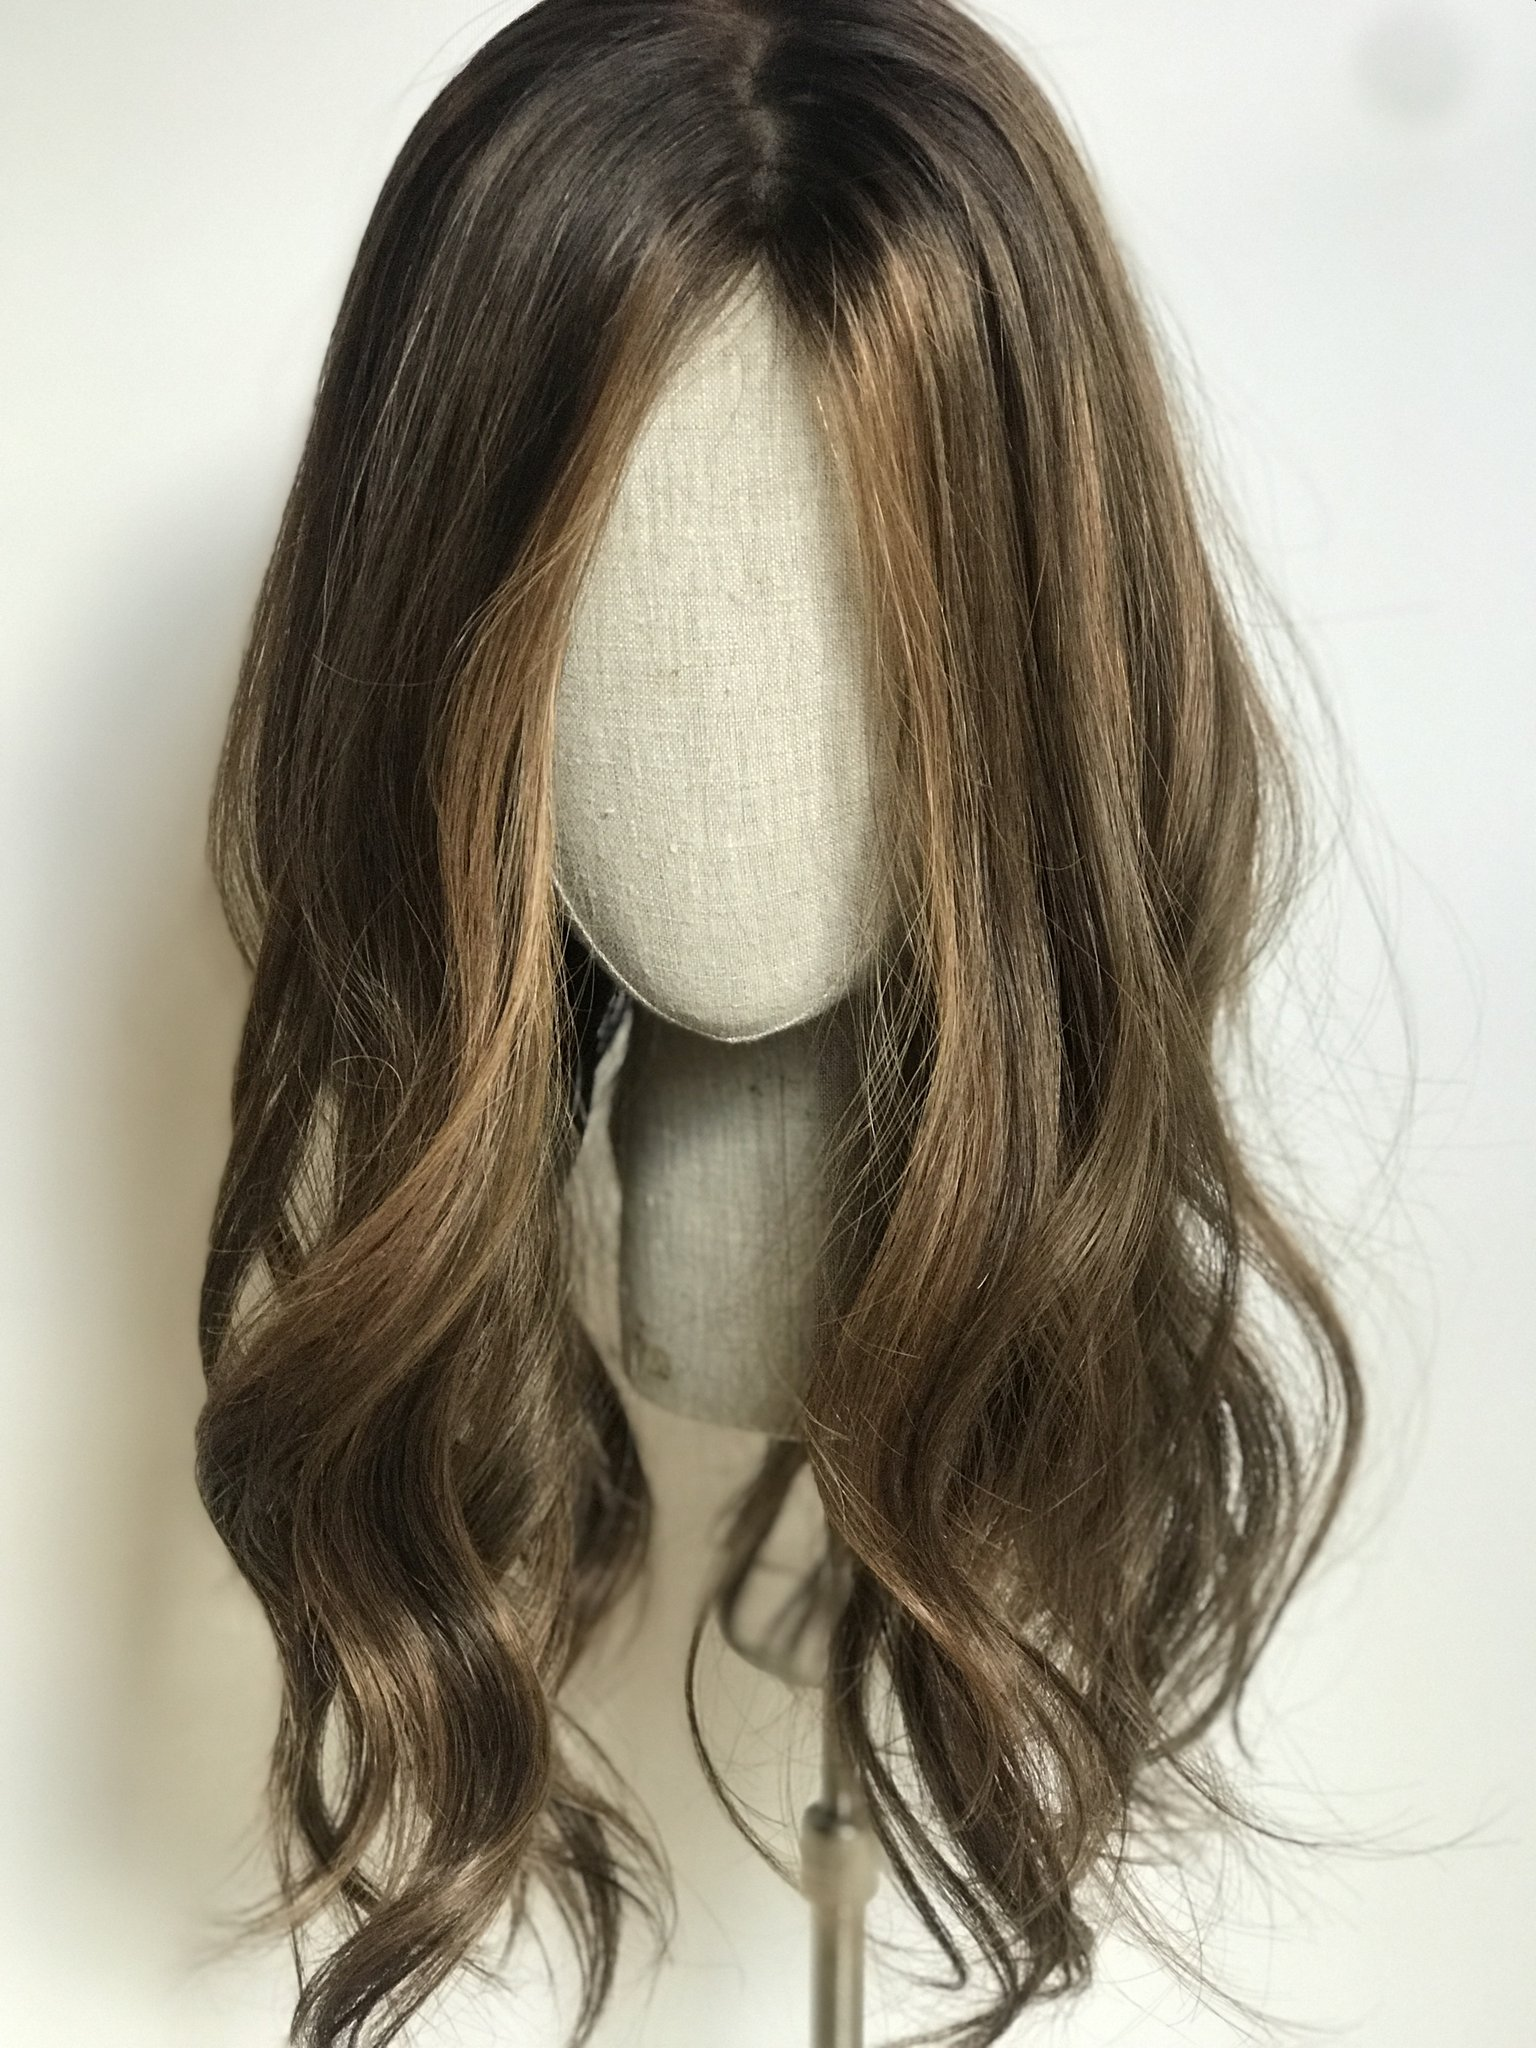 Qingdao Mysecretwigs Co., Ltd Launches A New Range Of Premium Hair Wigs For Global Fashion Women